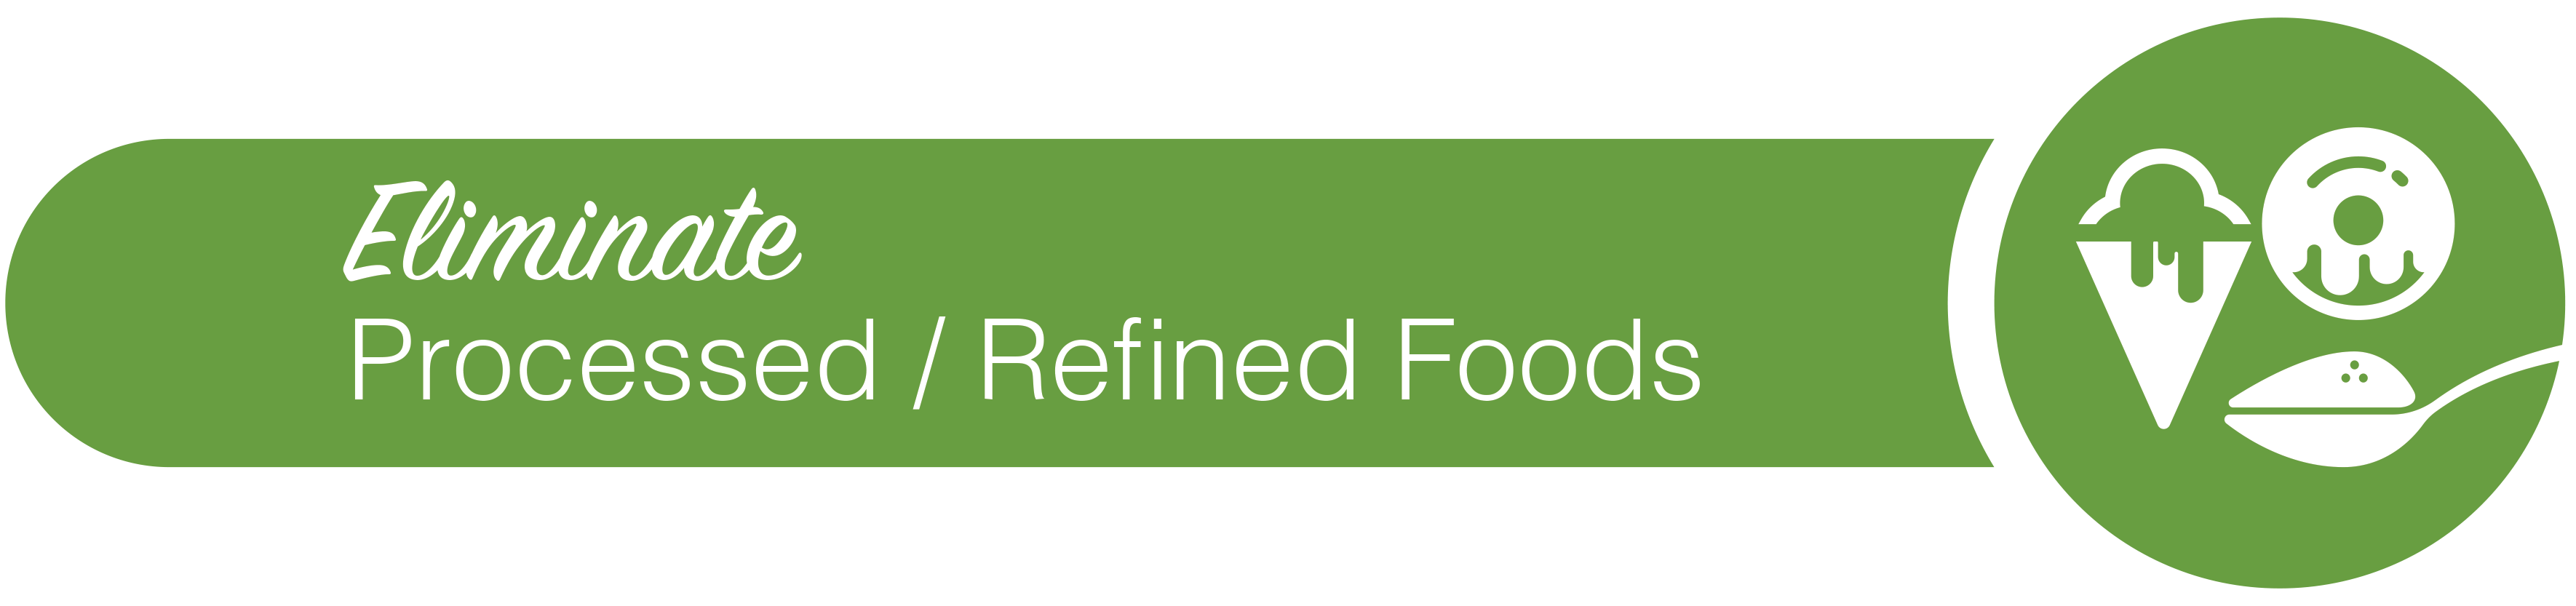 1119-KitchenClean-Up-Blog-Refined-Foods